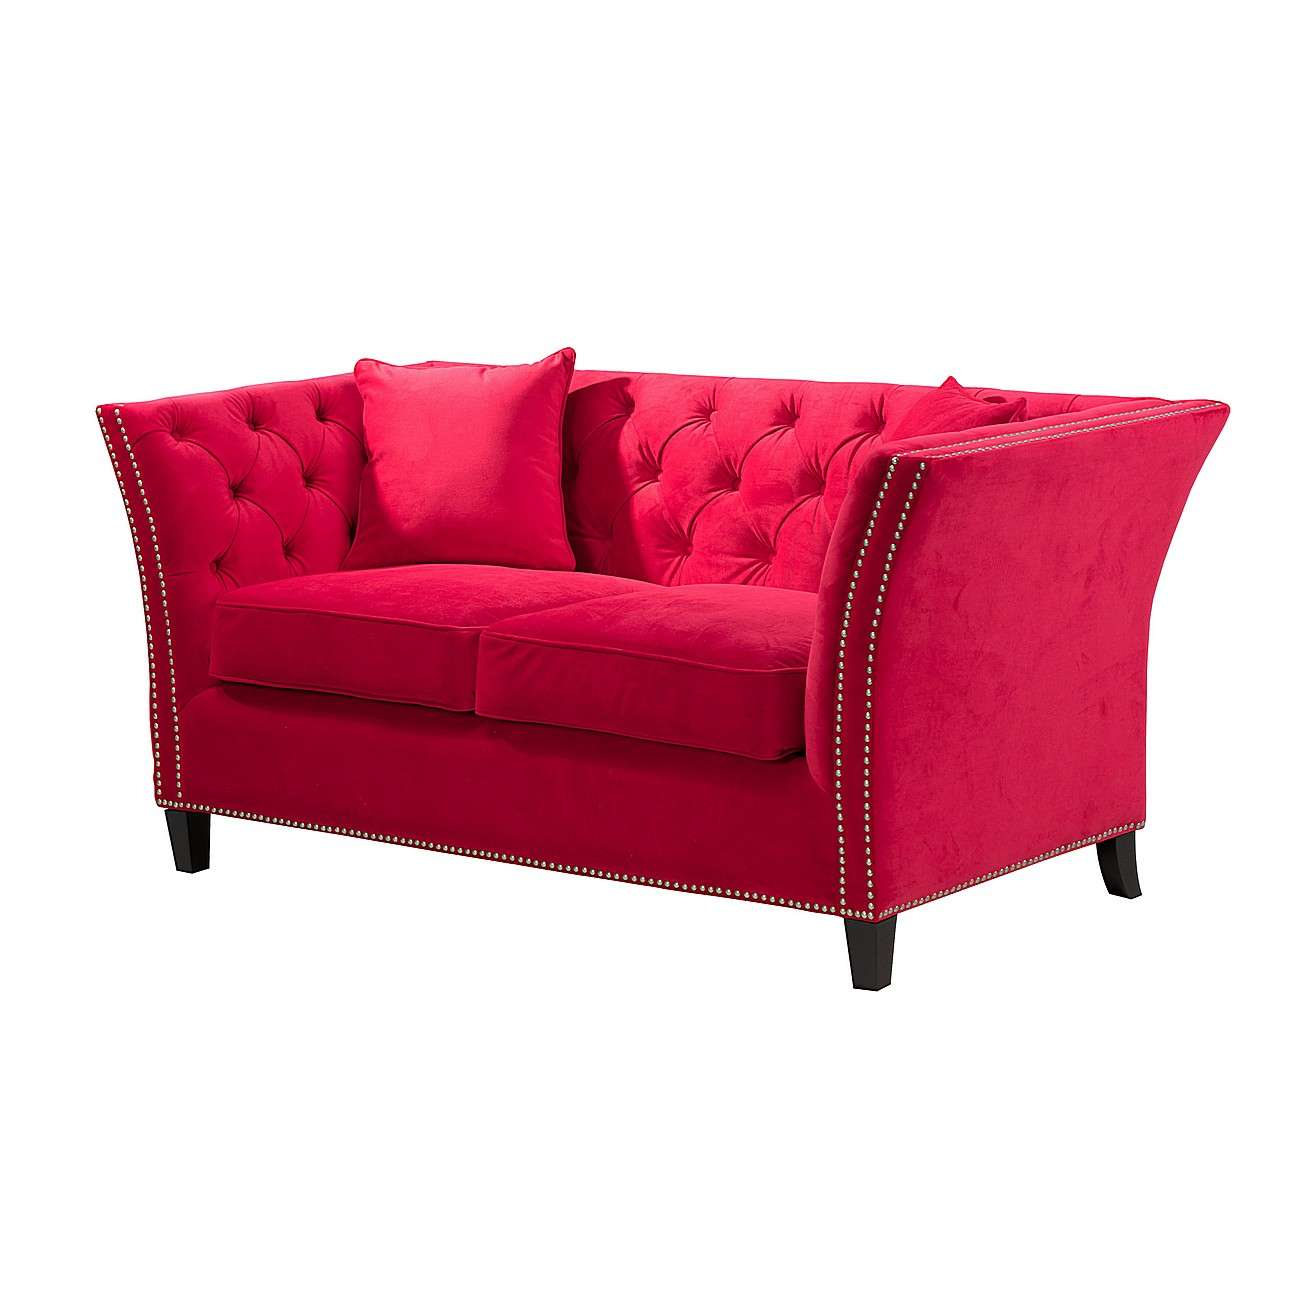 Sofa Chesterfield Modern Velvet Raspberry Red 2-Sitzer, 172x87x82cm